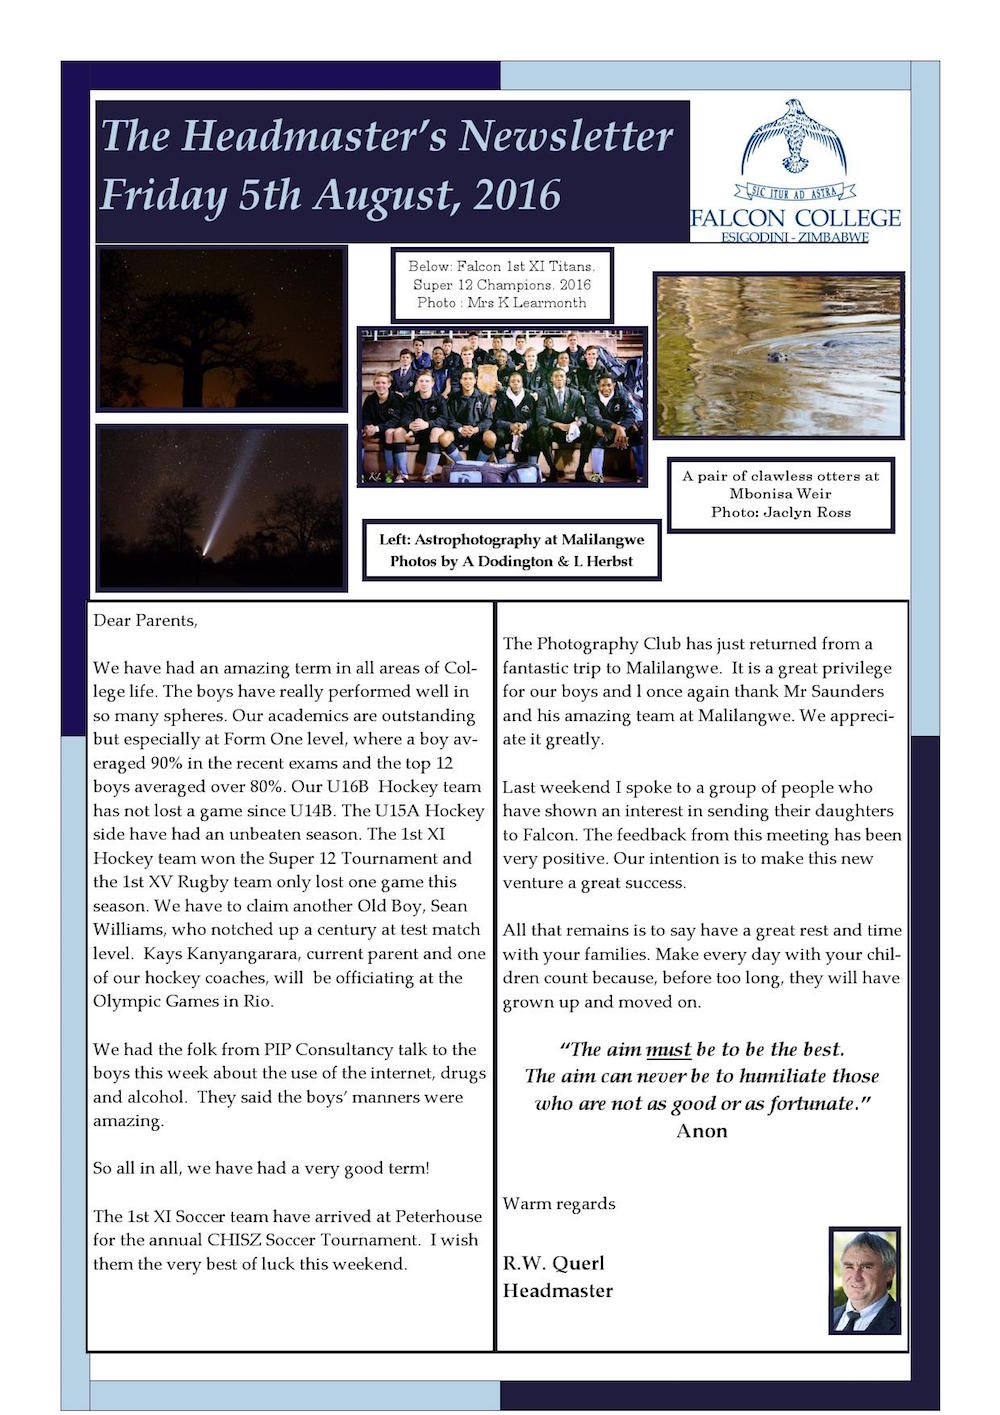 Headmaster's Newsletter Friday 5th August 2016 edited (2)_000001